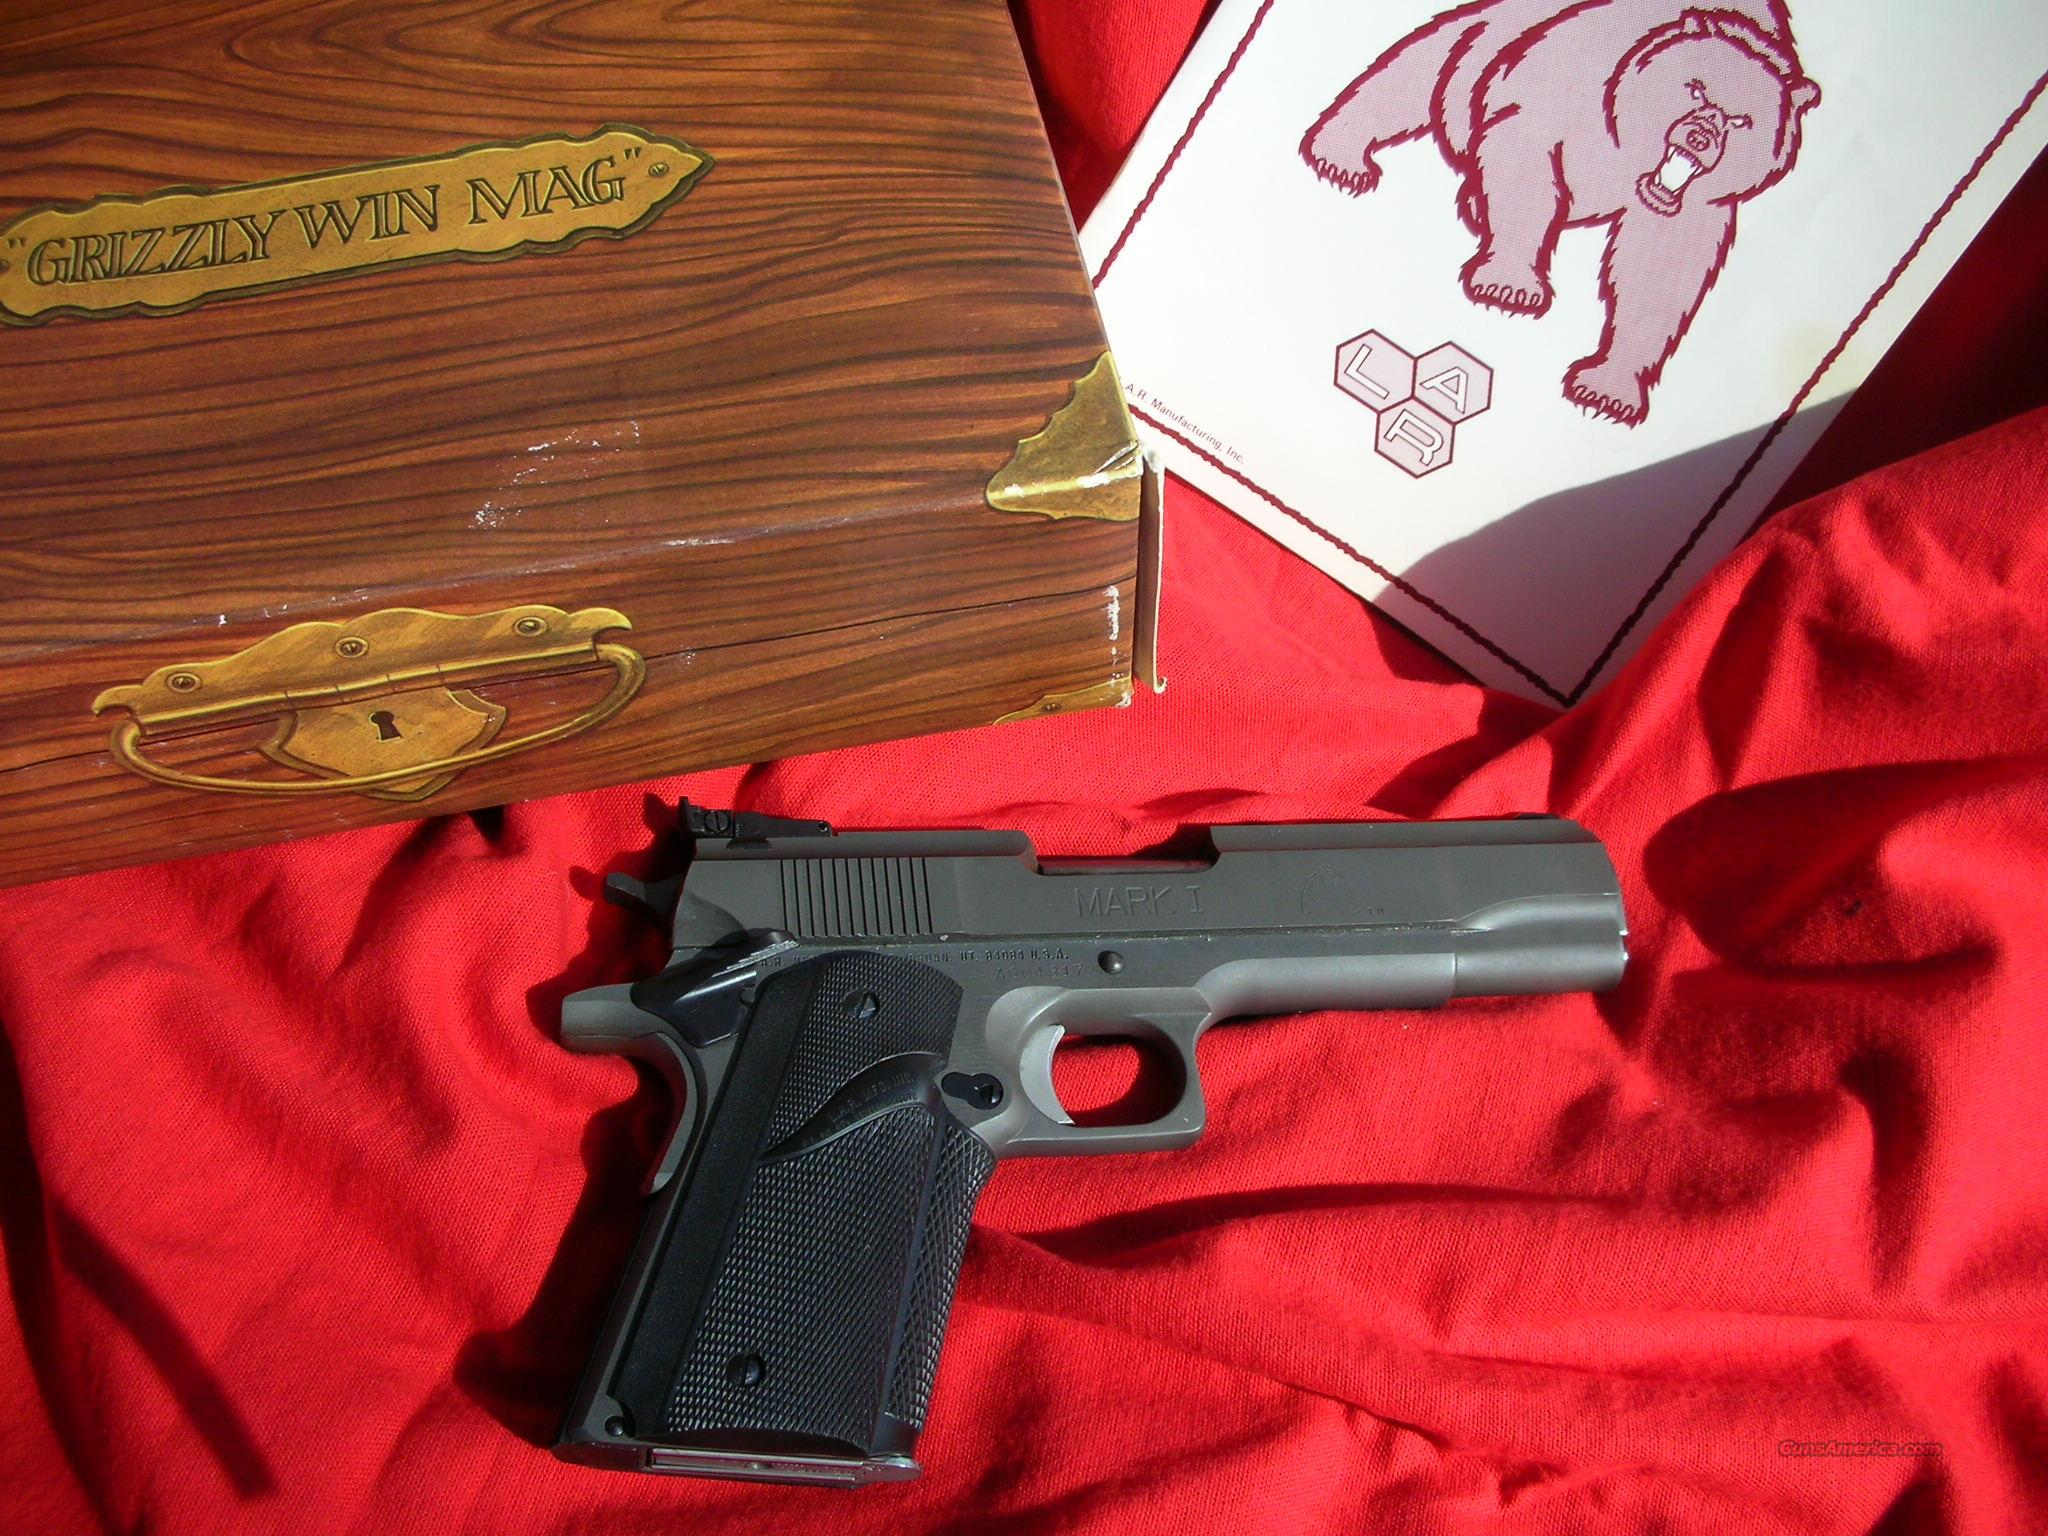 LAR GRIZZLY 45 WIN MAG   MINT ! Ammo Avail Also  Guns > Pistols > LAR/Grizzly Mfg. Co. Pistols